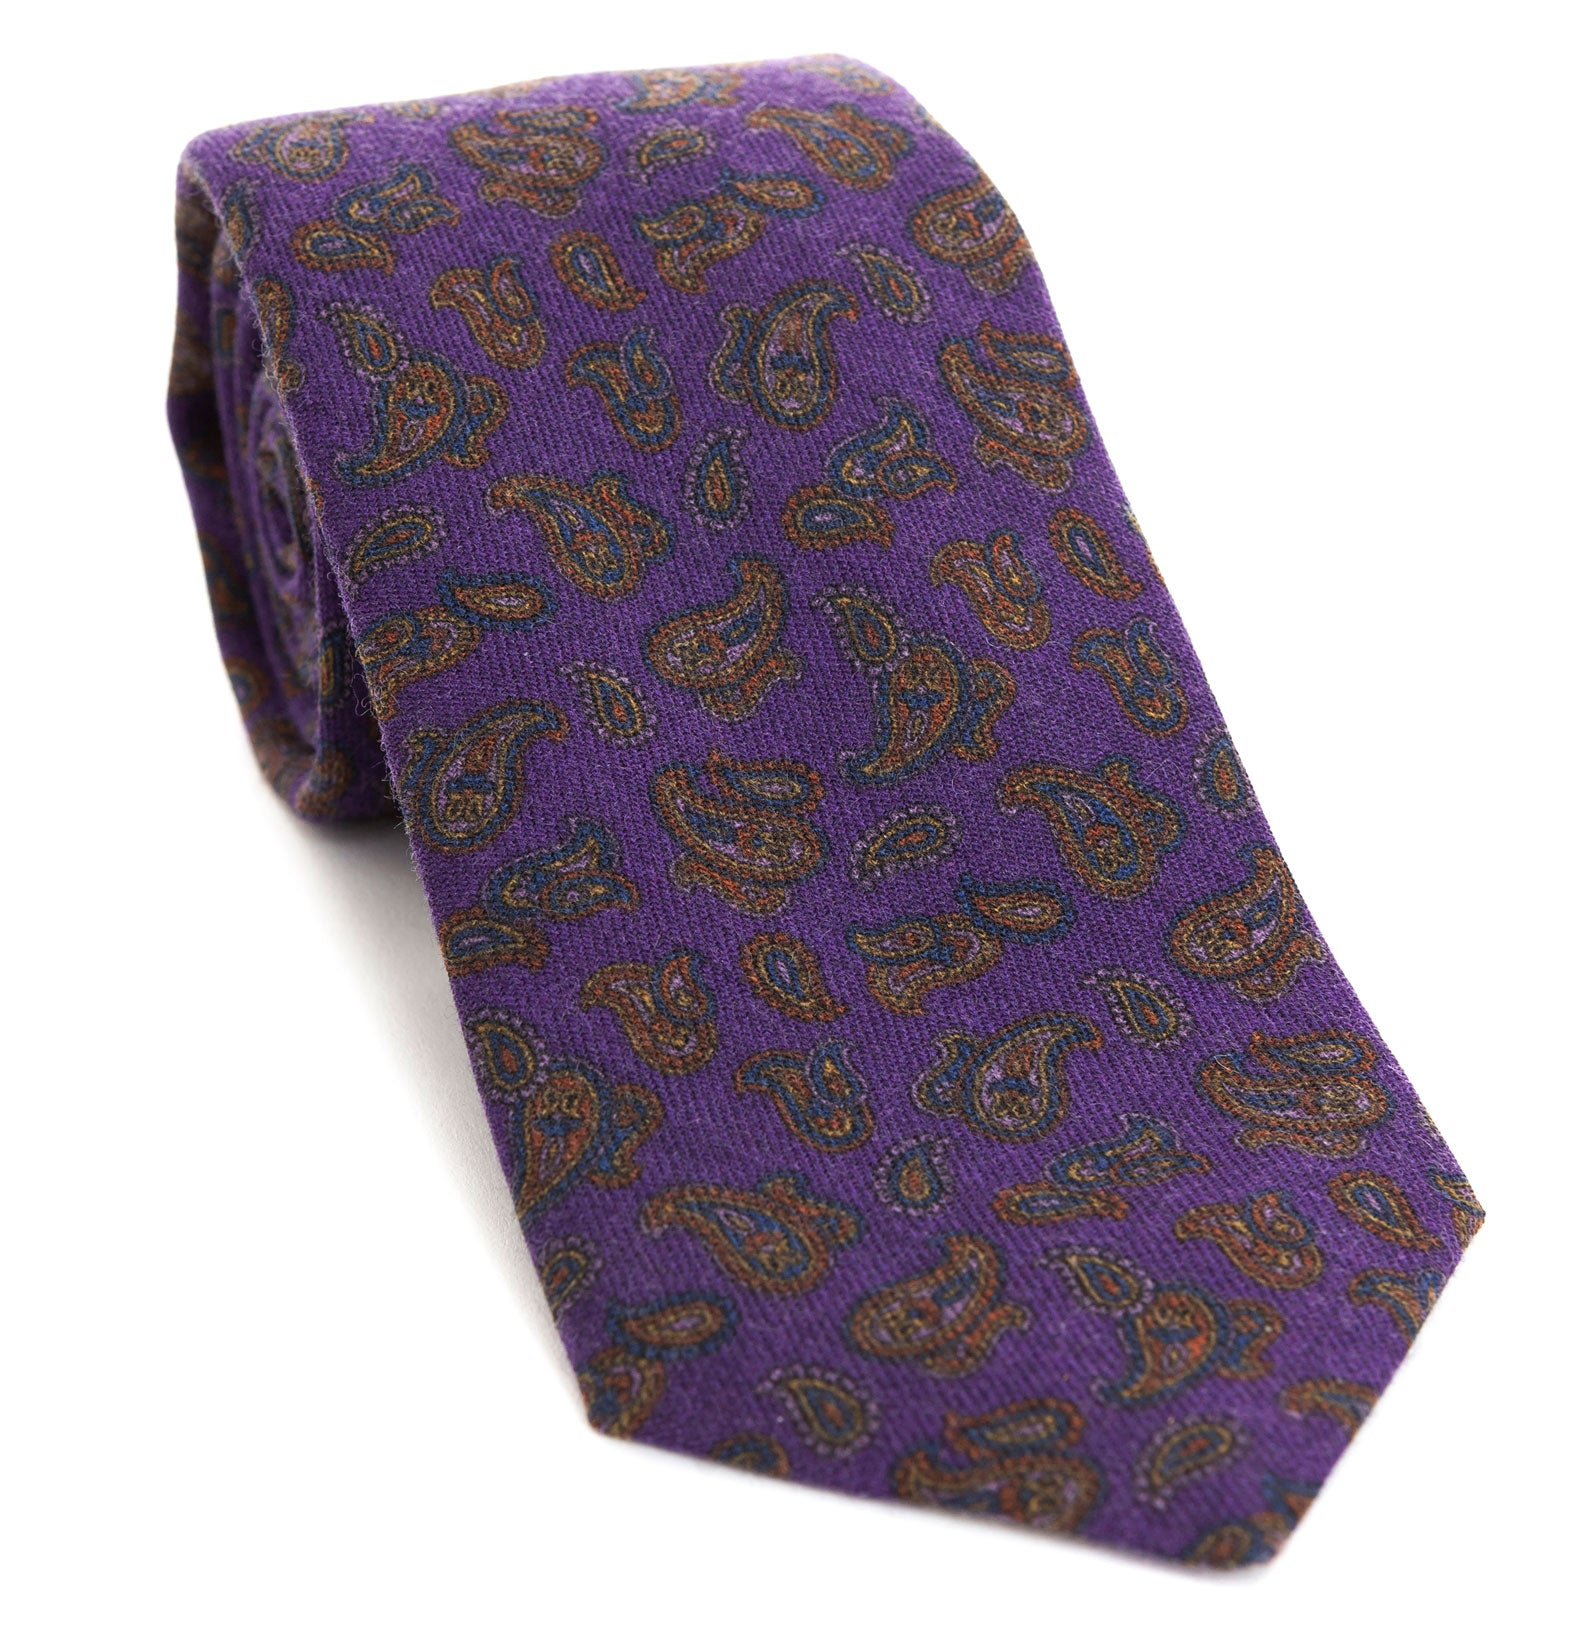 Luxury woven wool tie designed and made exclusively for Regent featuring a deep royal purple with autumnal red-brown and blue paisley leaves curling through the air of it.